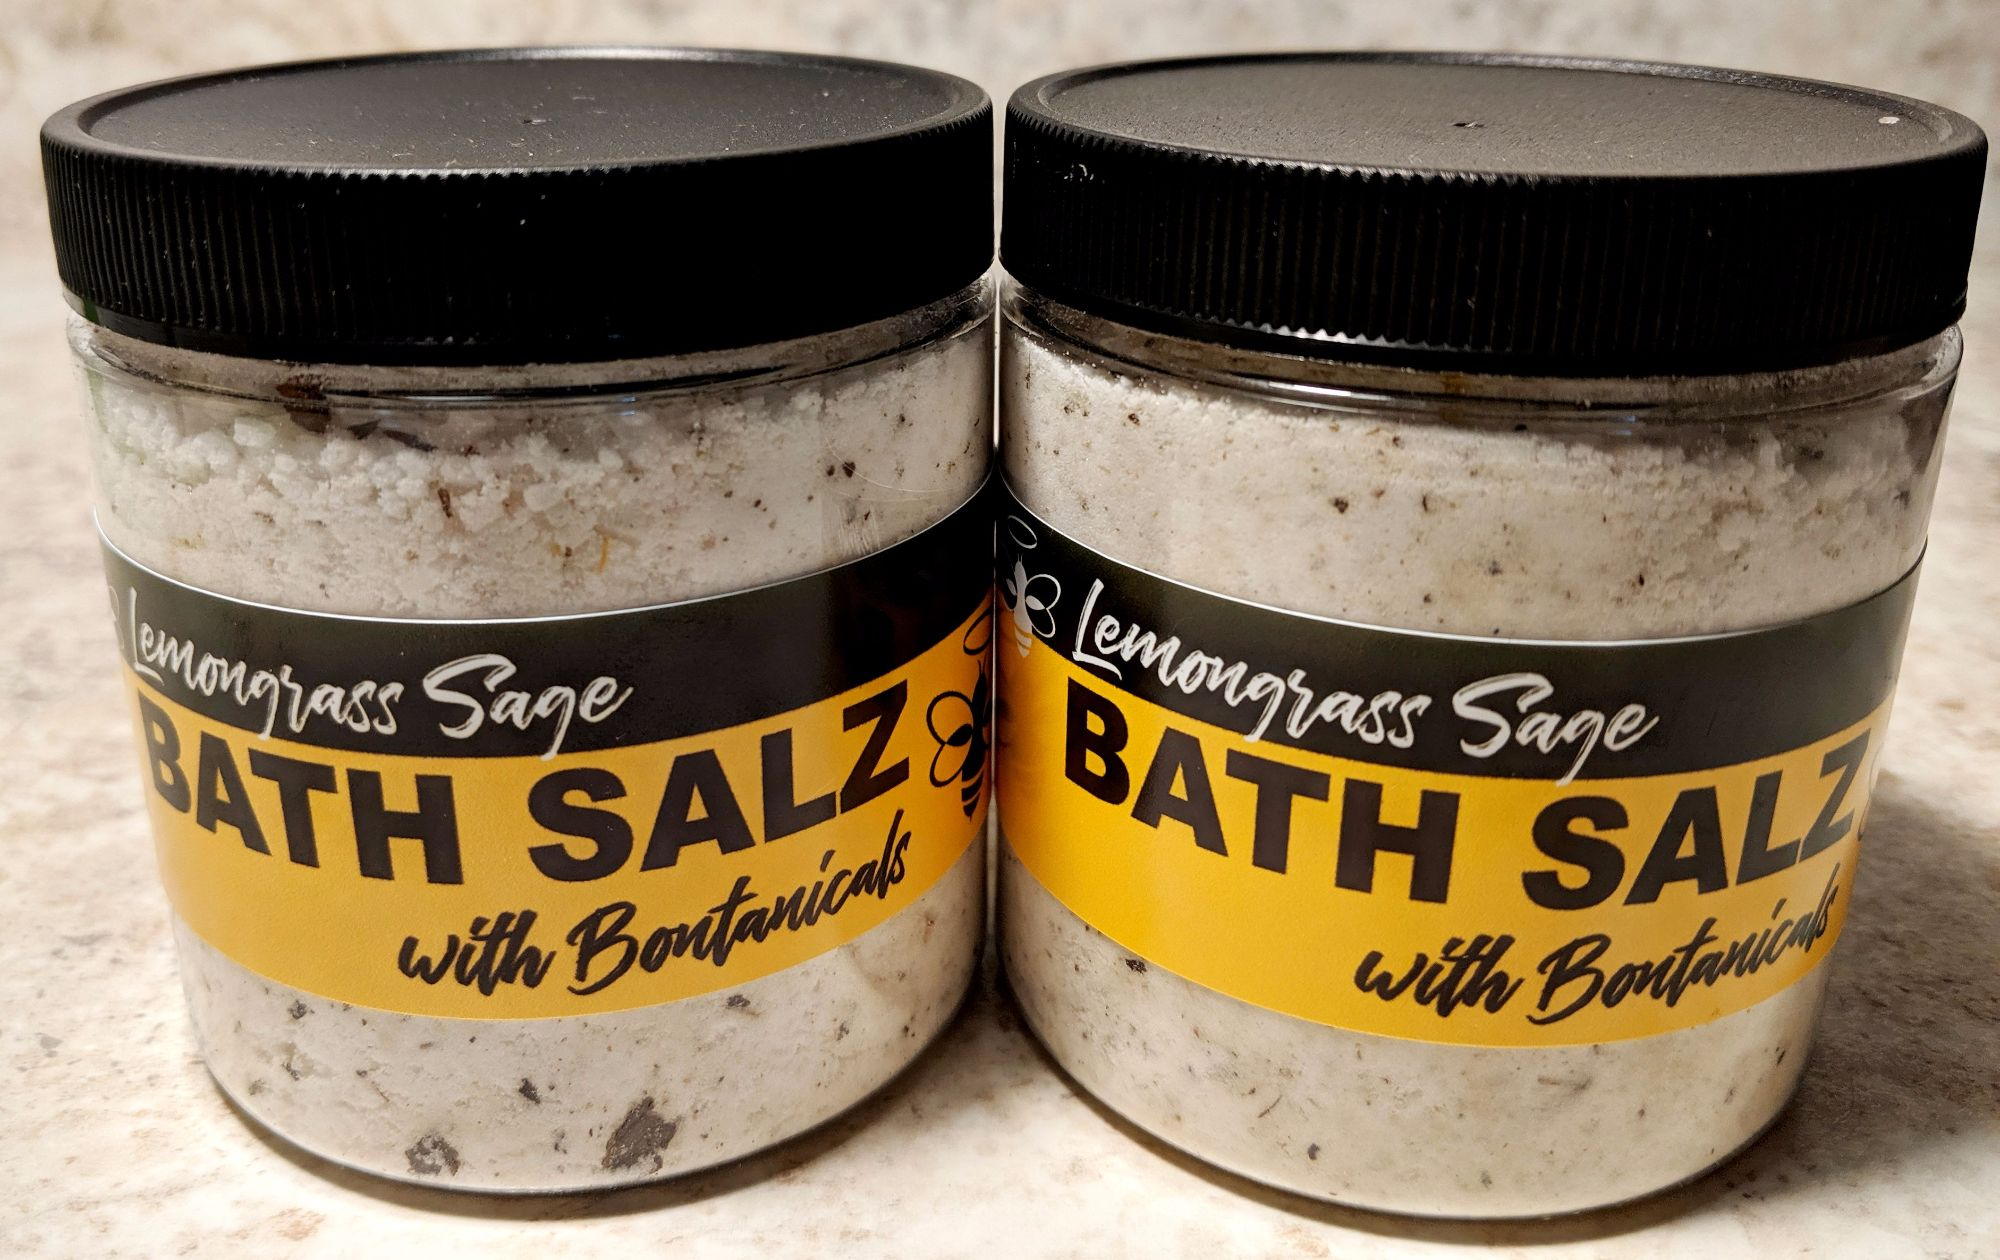 Bath Salts with Botanicals